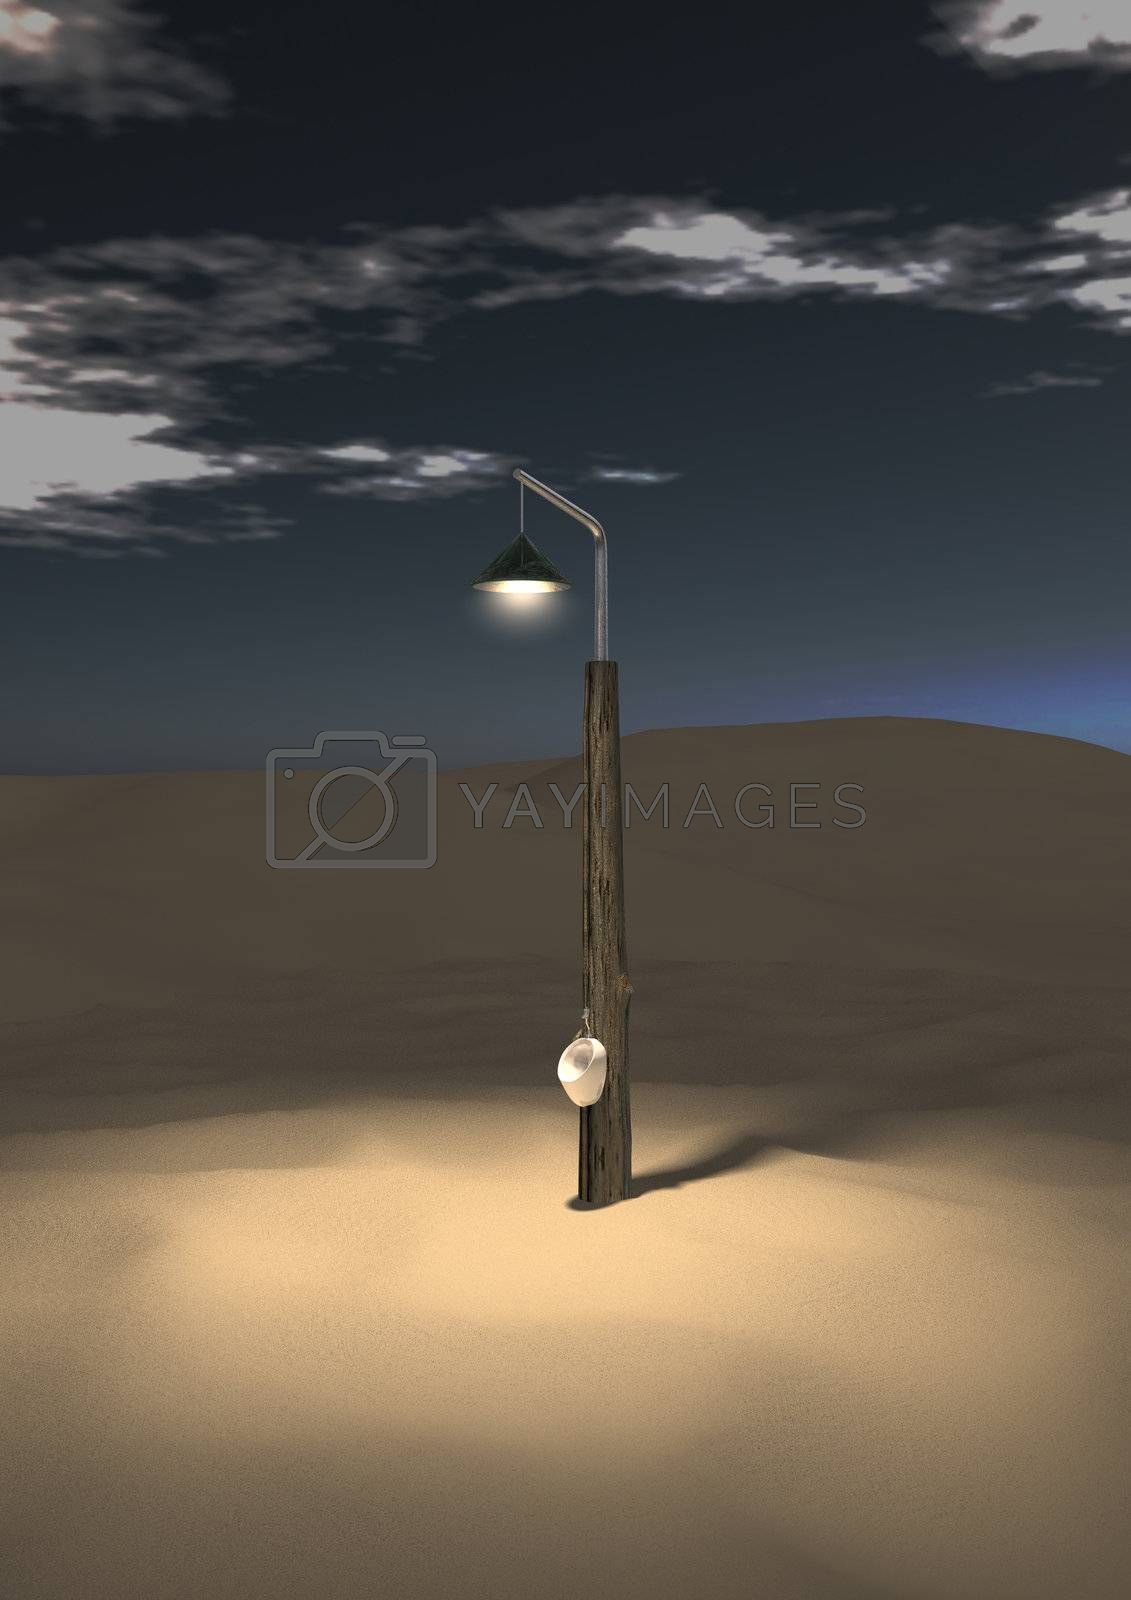 A lone post with urinal standing in the desert